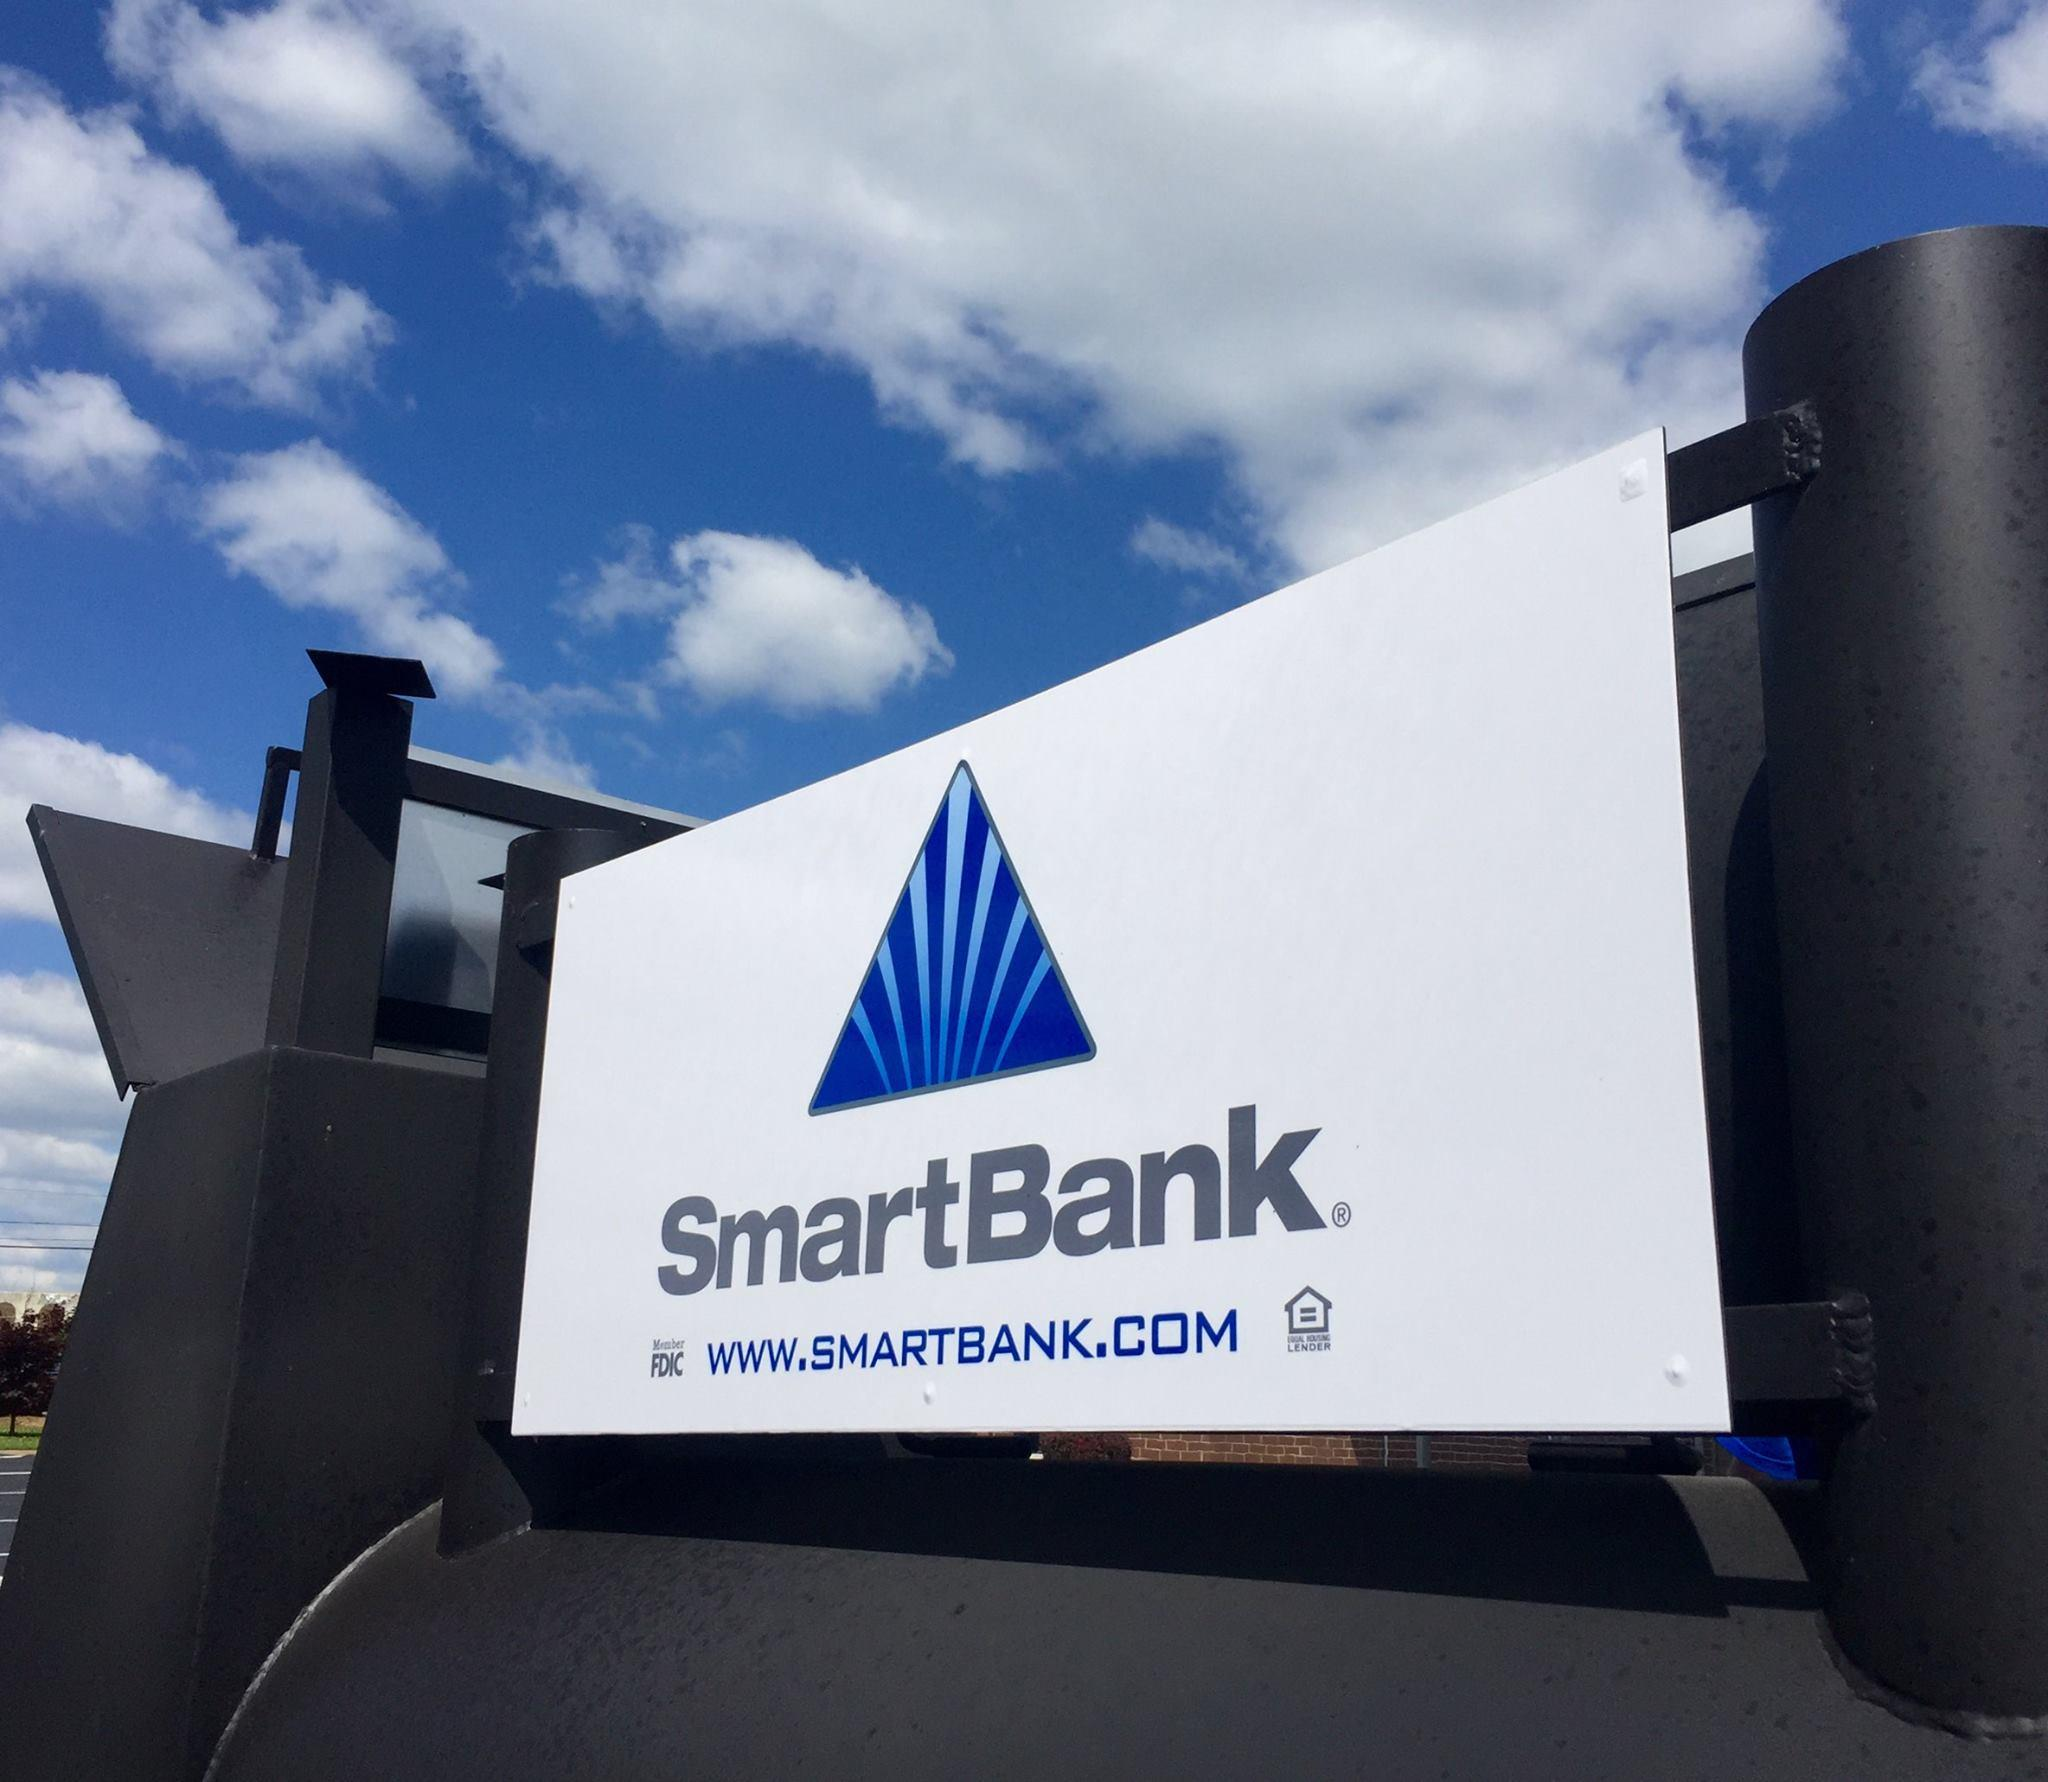 SmartBank Knoxville (Bearden) image 22